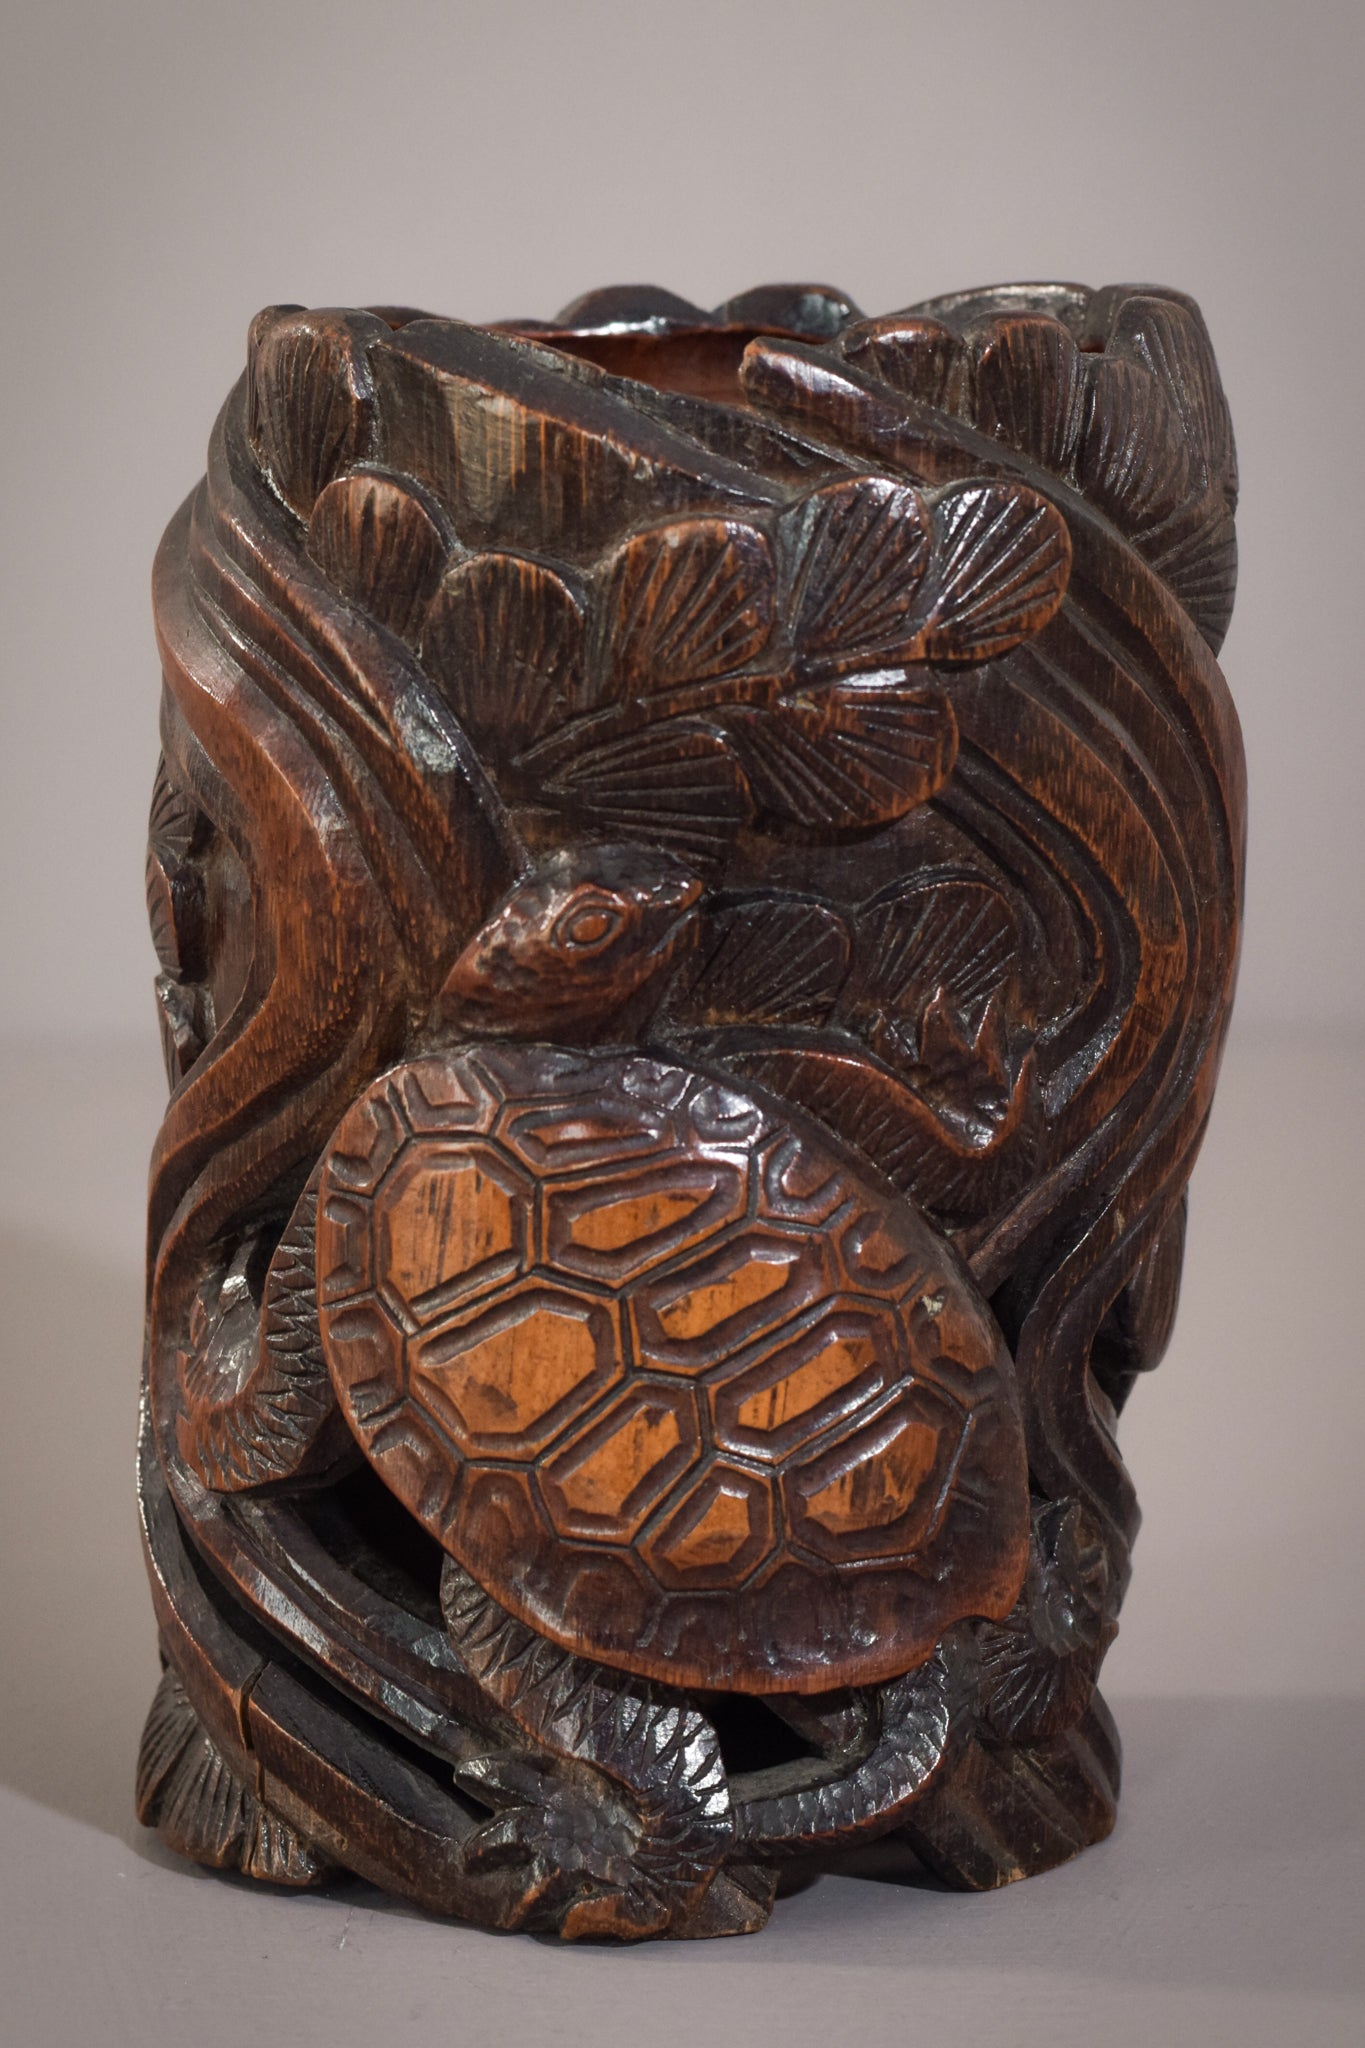 Rare Art Nouveau Chinese/Japanese Carved Brush Pot With Turtles